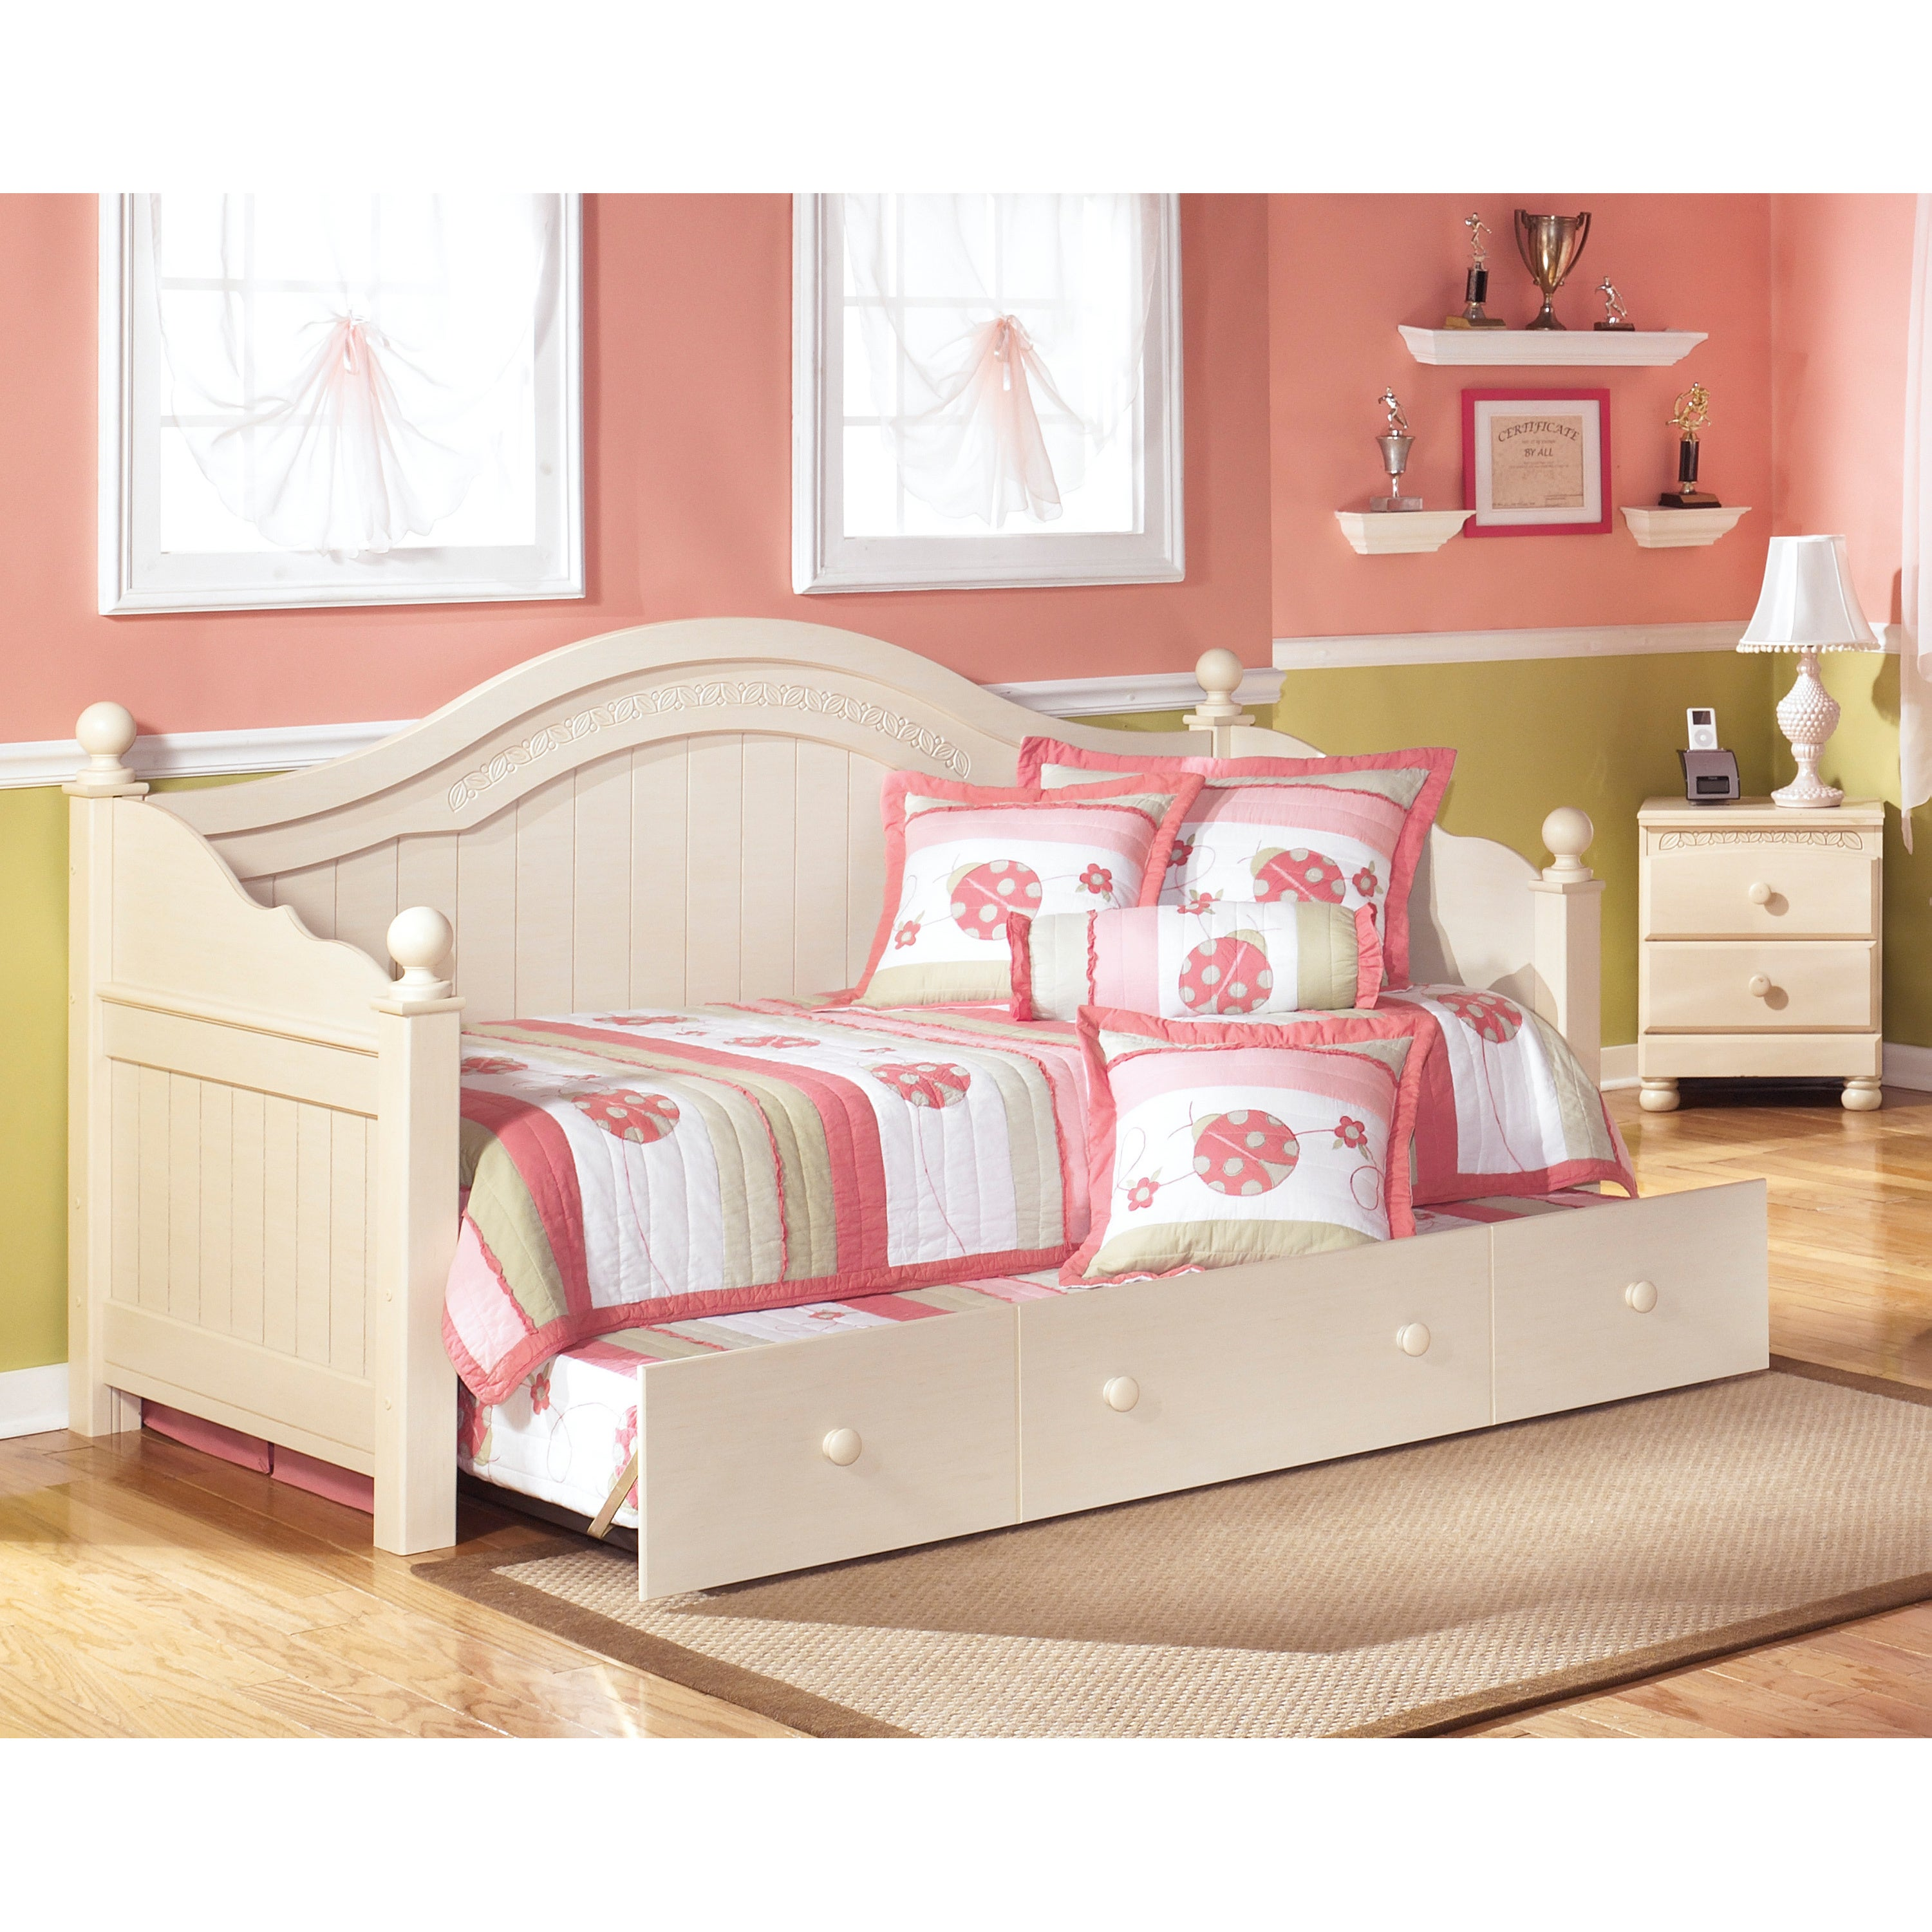 Signature Design by Ashley Cottage Retreat Cream Day Bed with Trundle